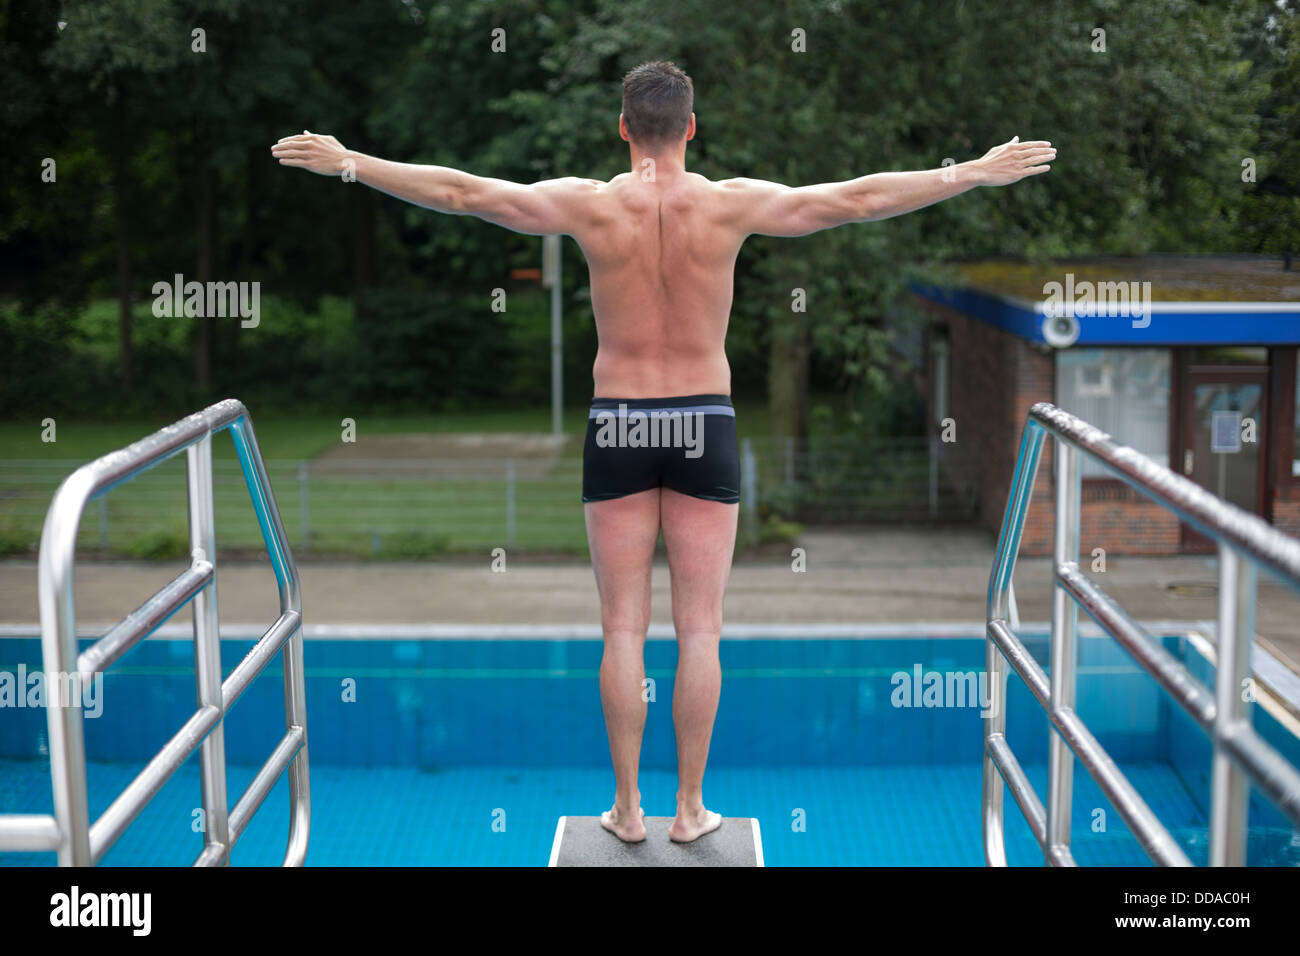 Man Standing On Diving Board At Public Swimming Pool Ready To Jump